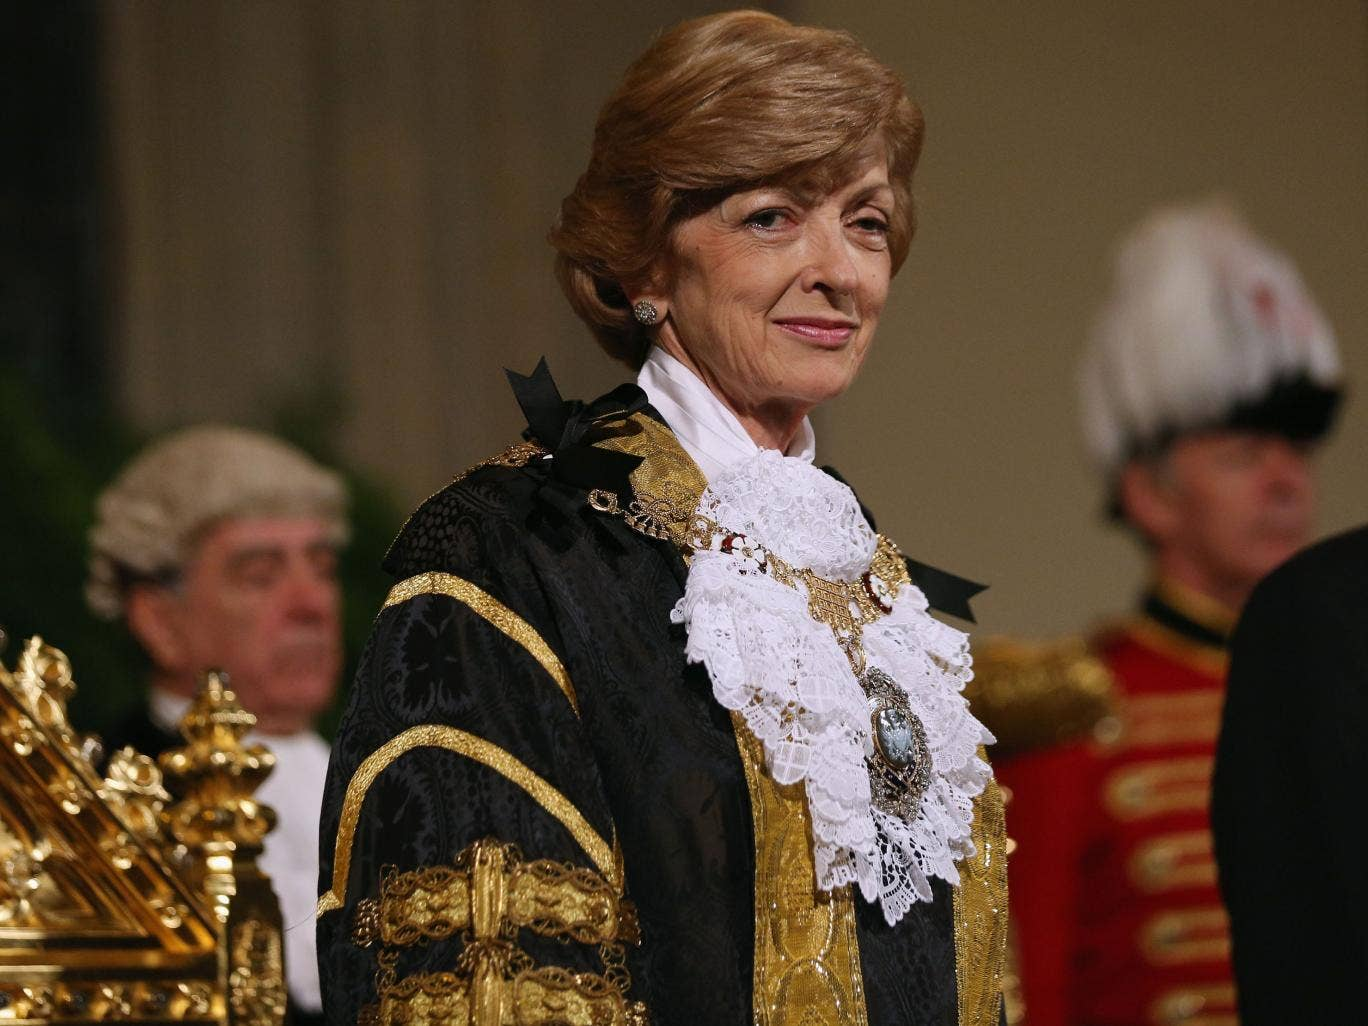 Lord Mayor of London Fiona Woolf at the Lord Mayor's Banquet in November 2013